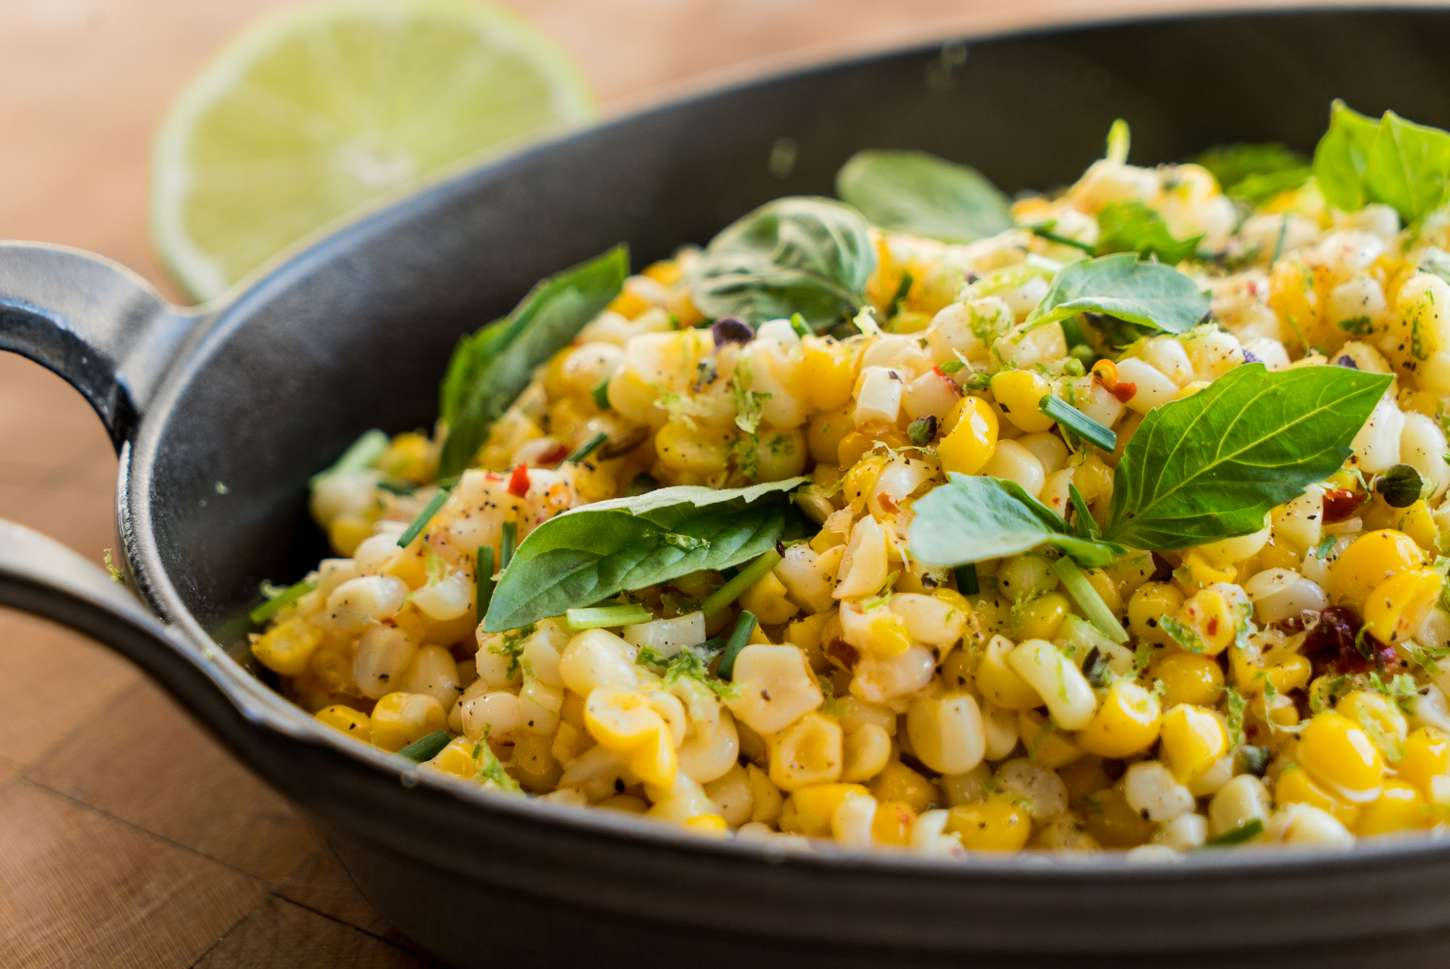 Crisp Corn With Butter and Fresh Herbs